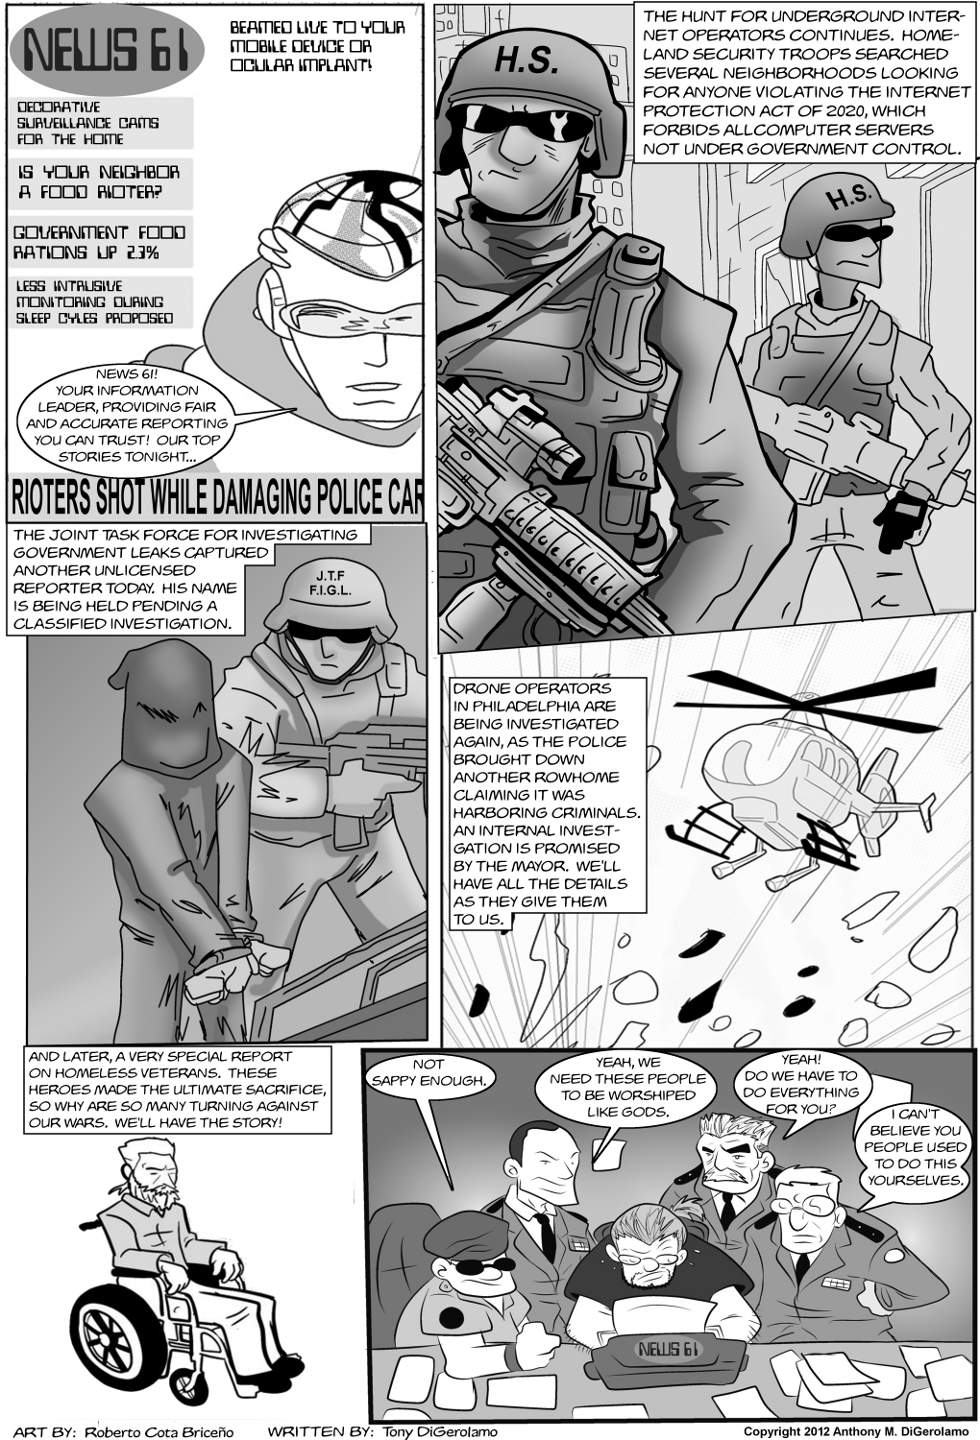 The Antiwar Comic:  The Future of Journalism